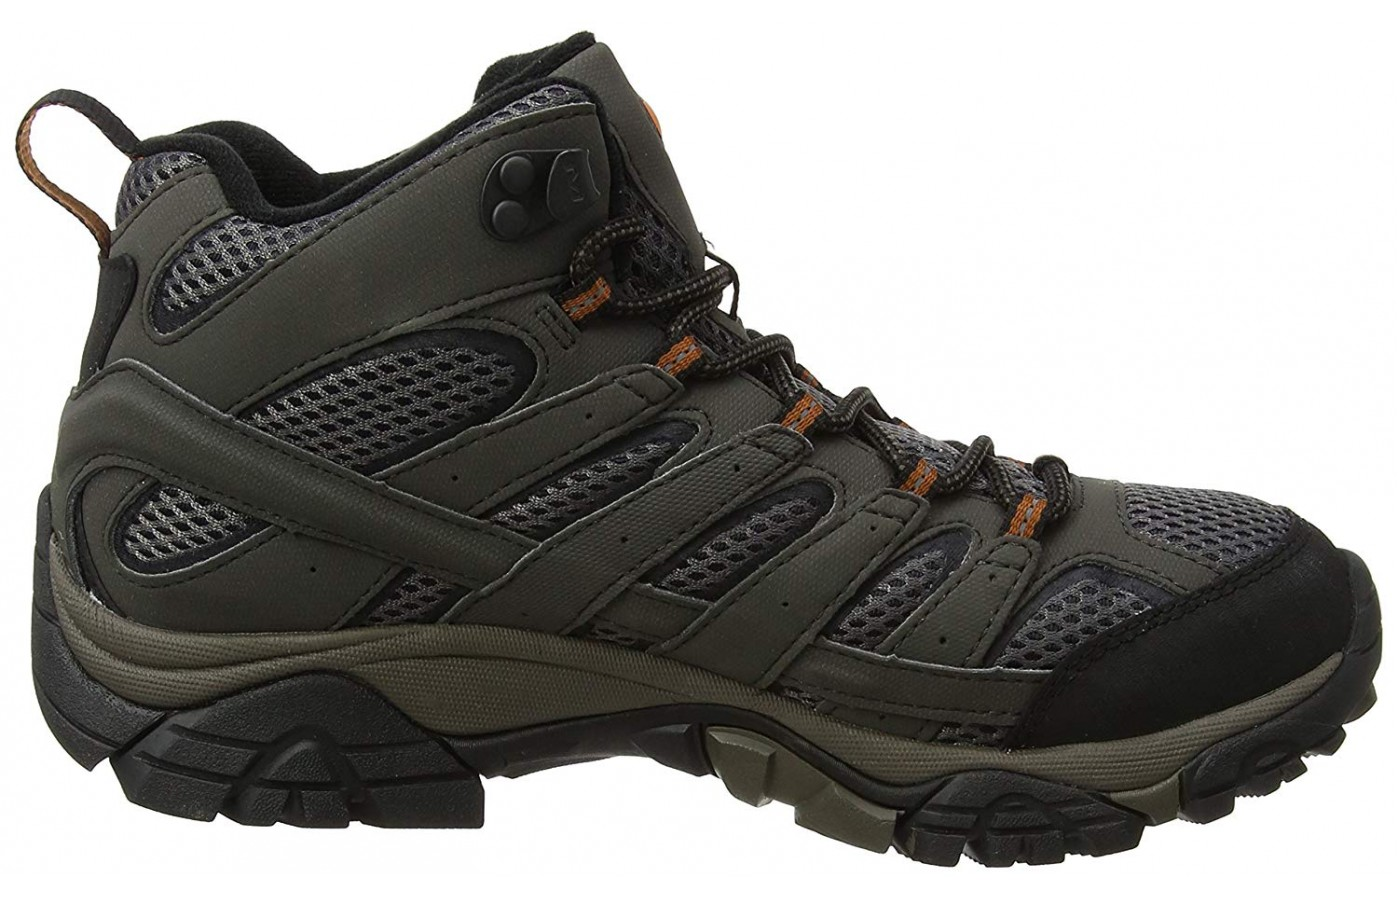 The structure of this boot offers great ankle support.